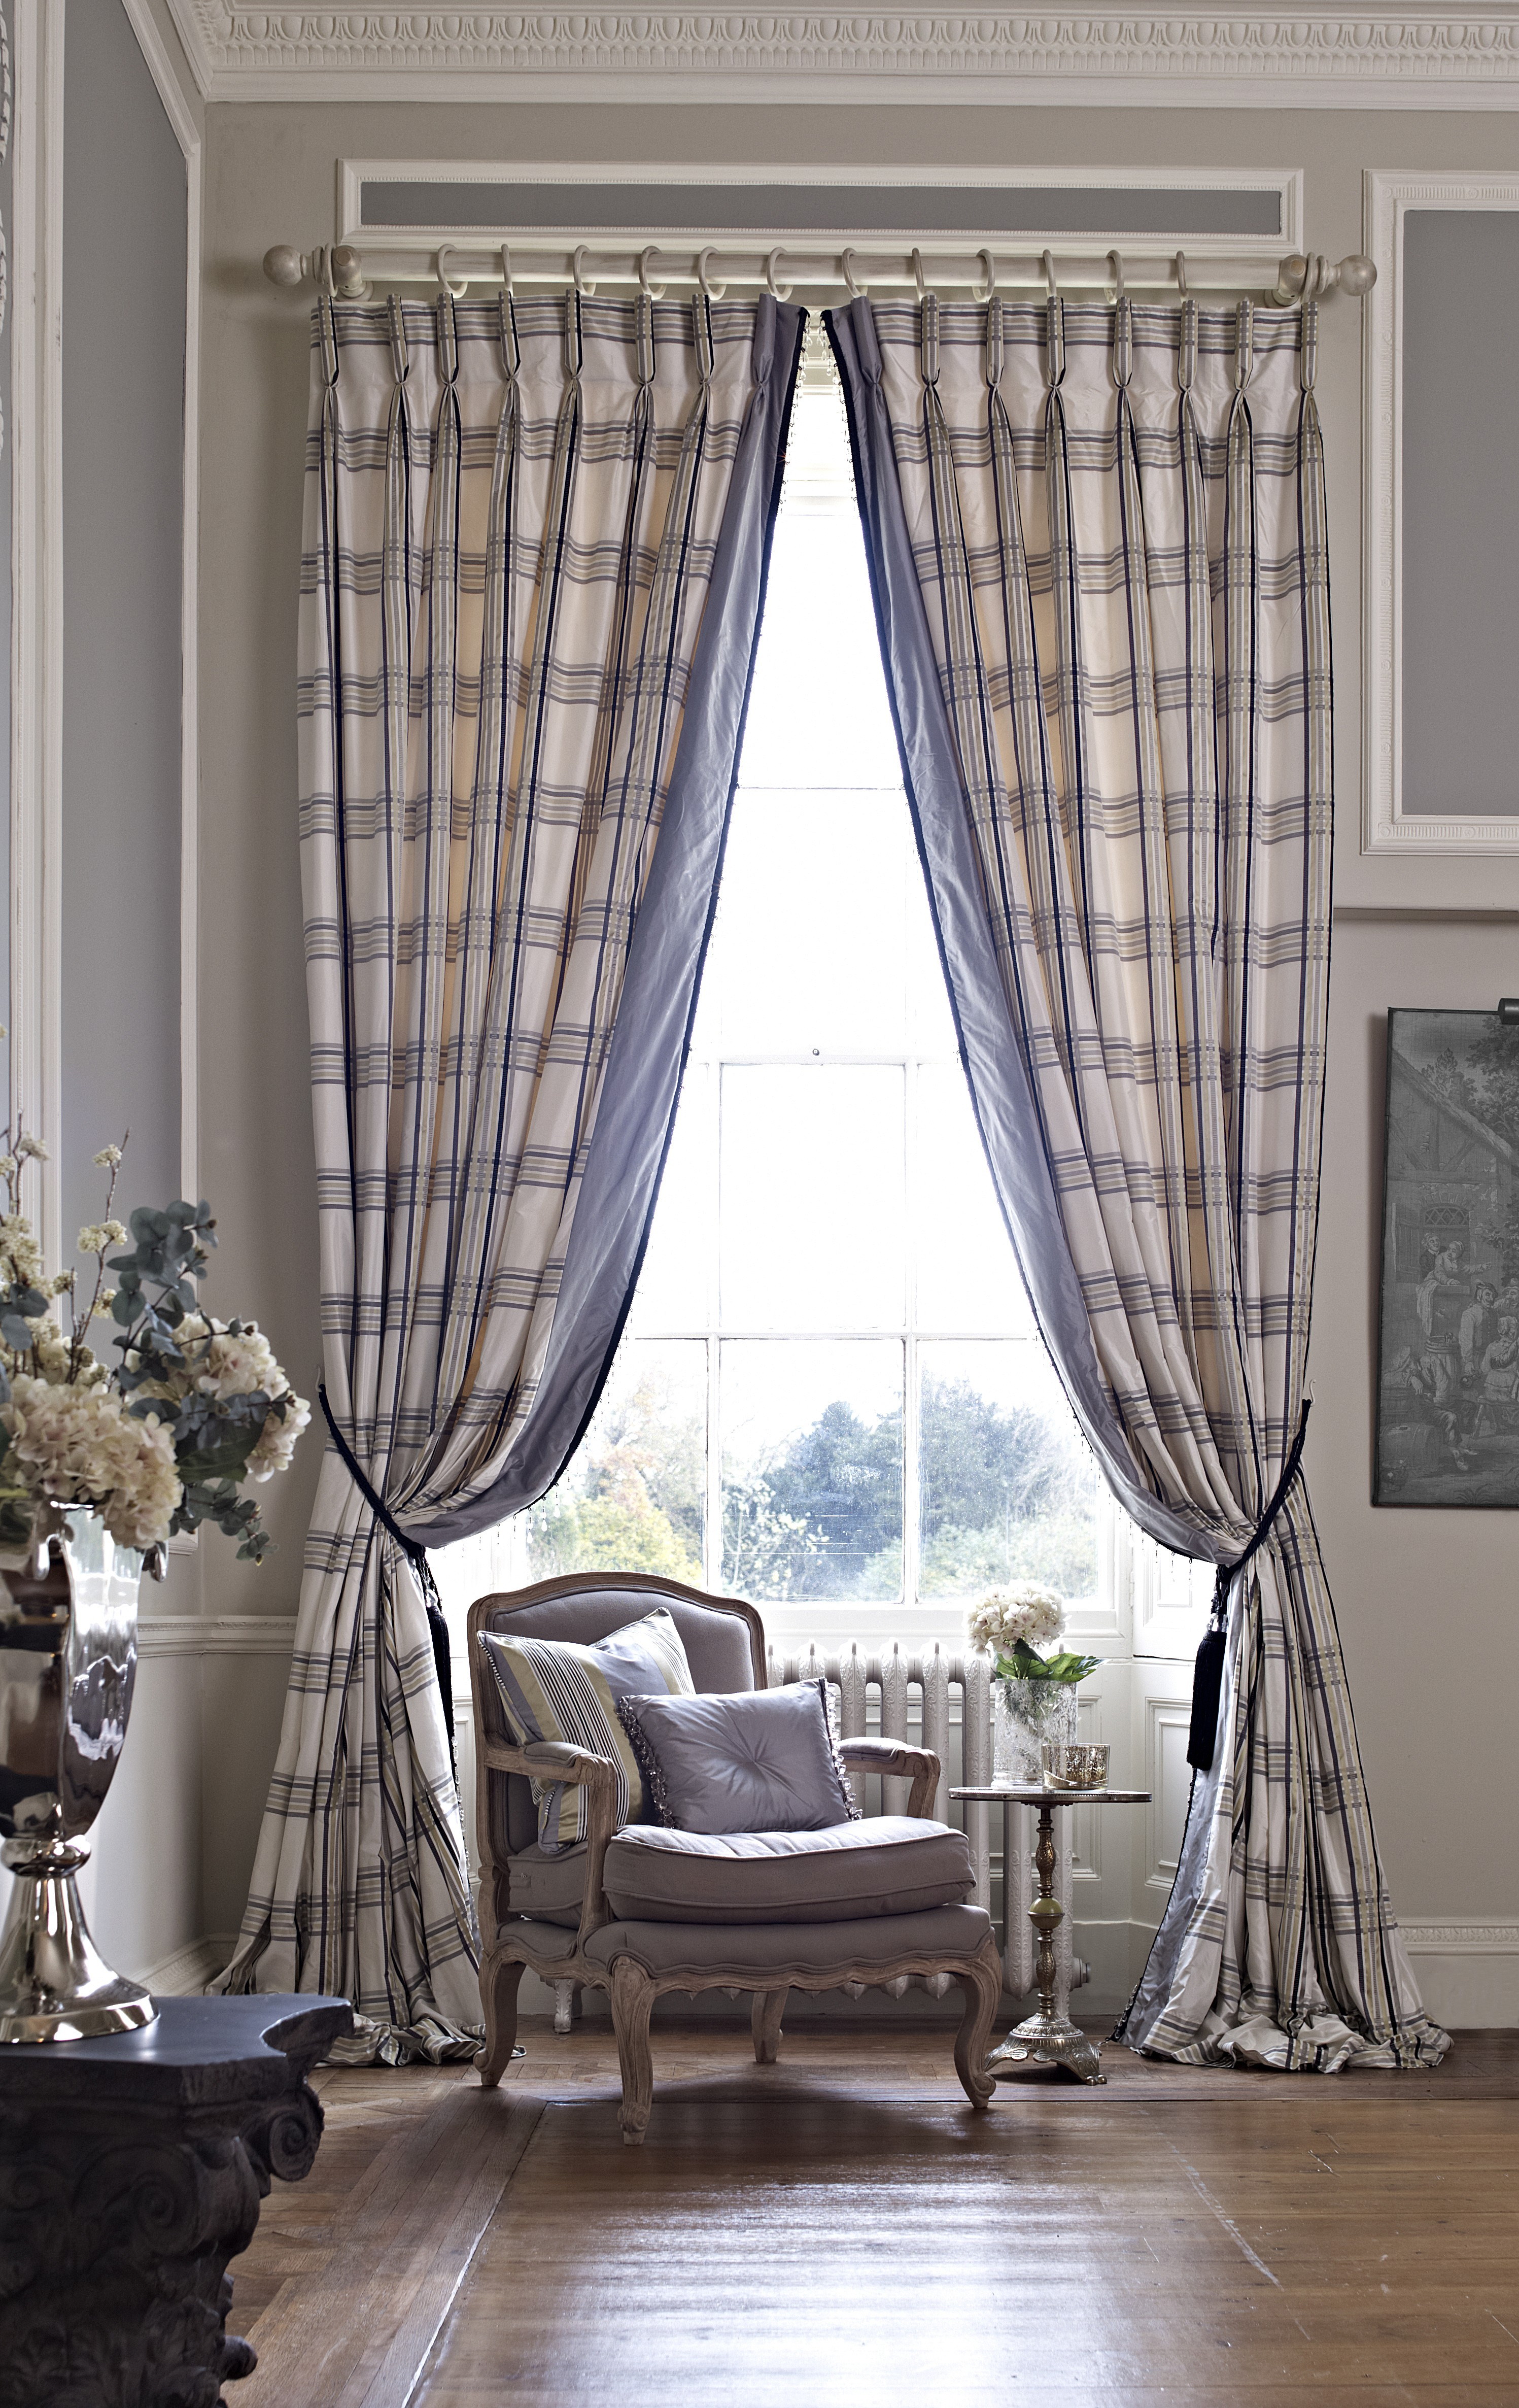 Curtains Made to Measure - Eeze Interiors - It's All So Eeze!